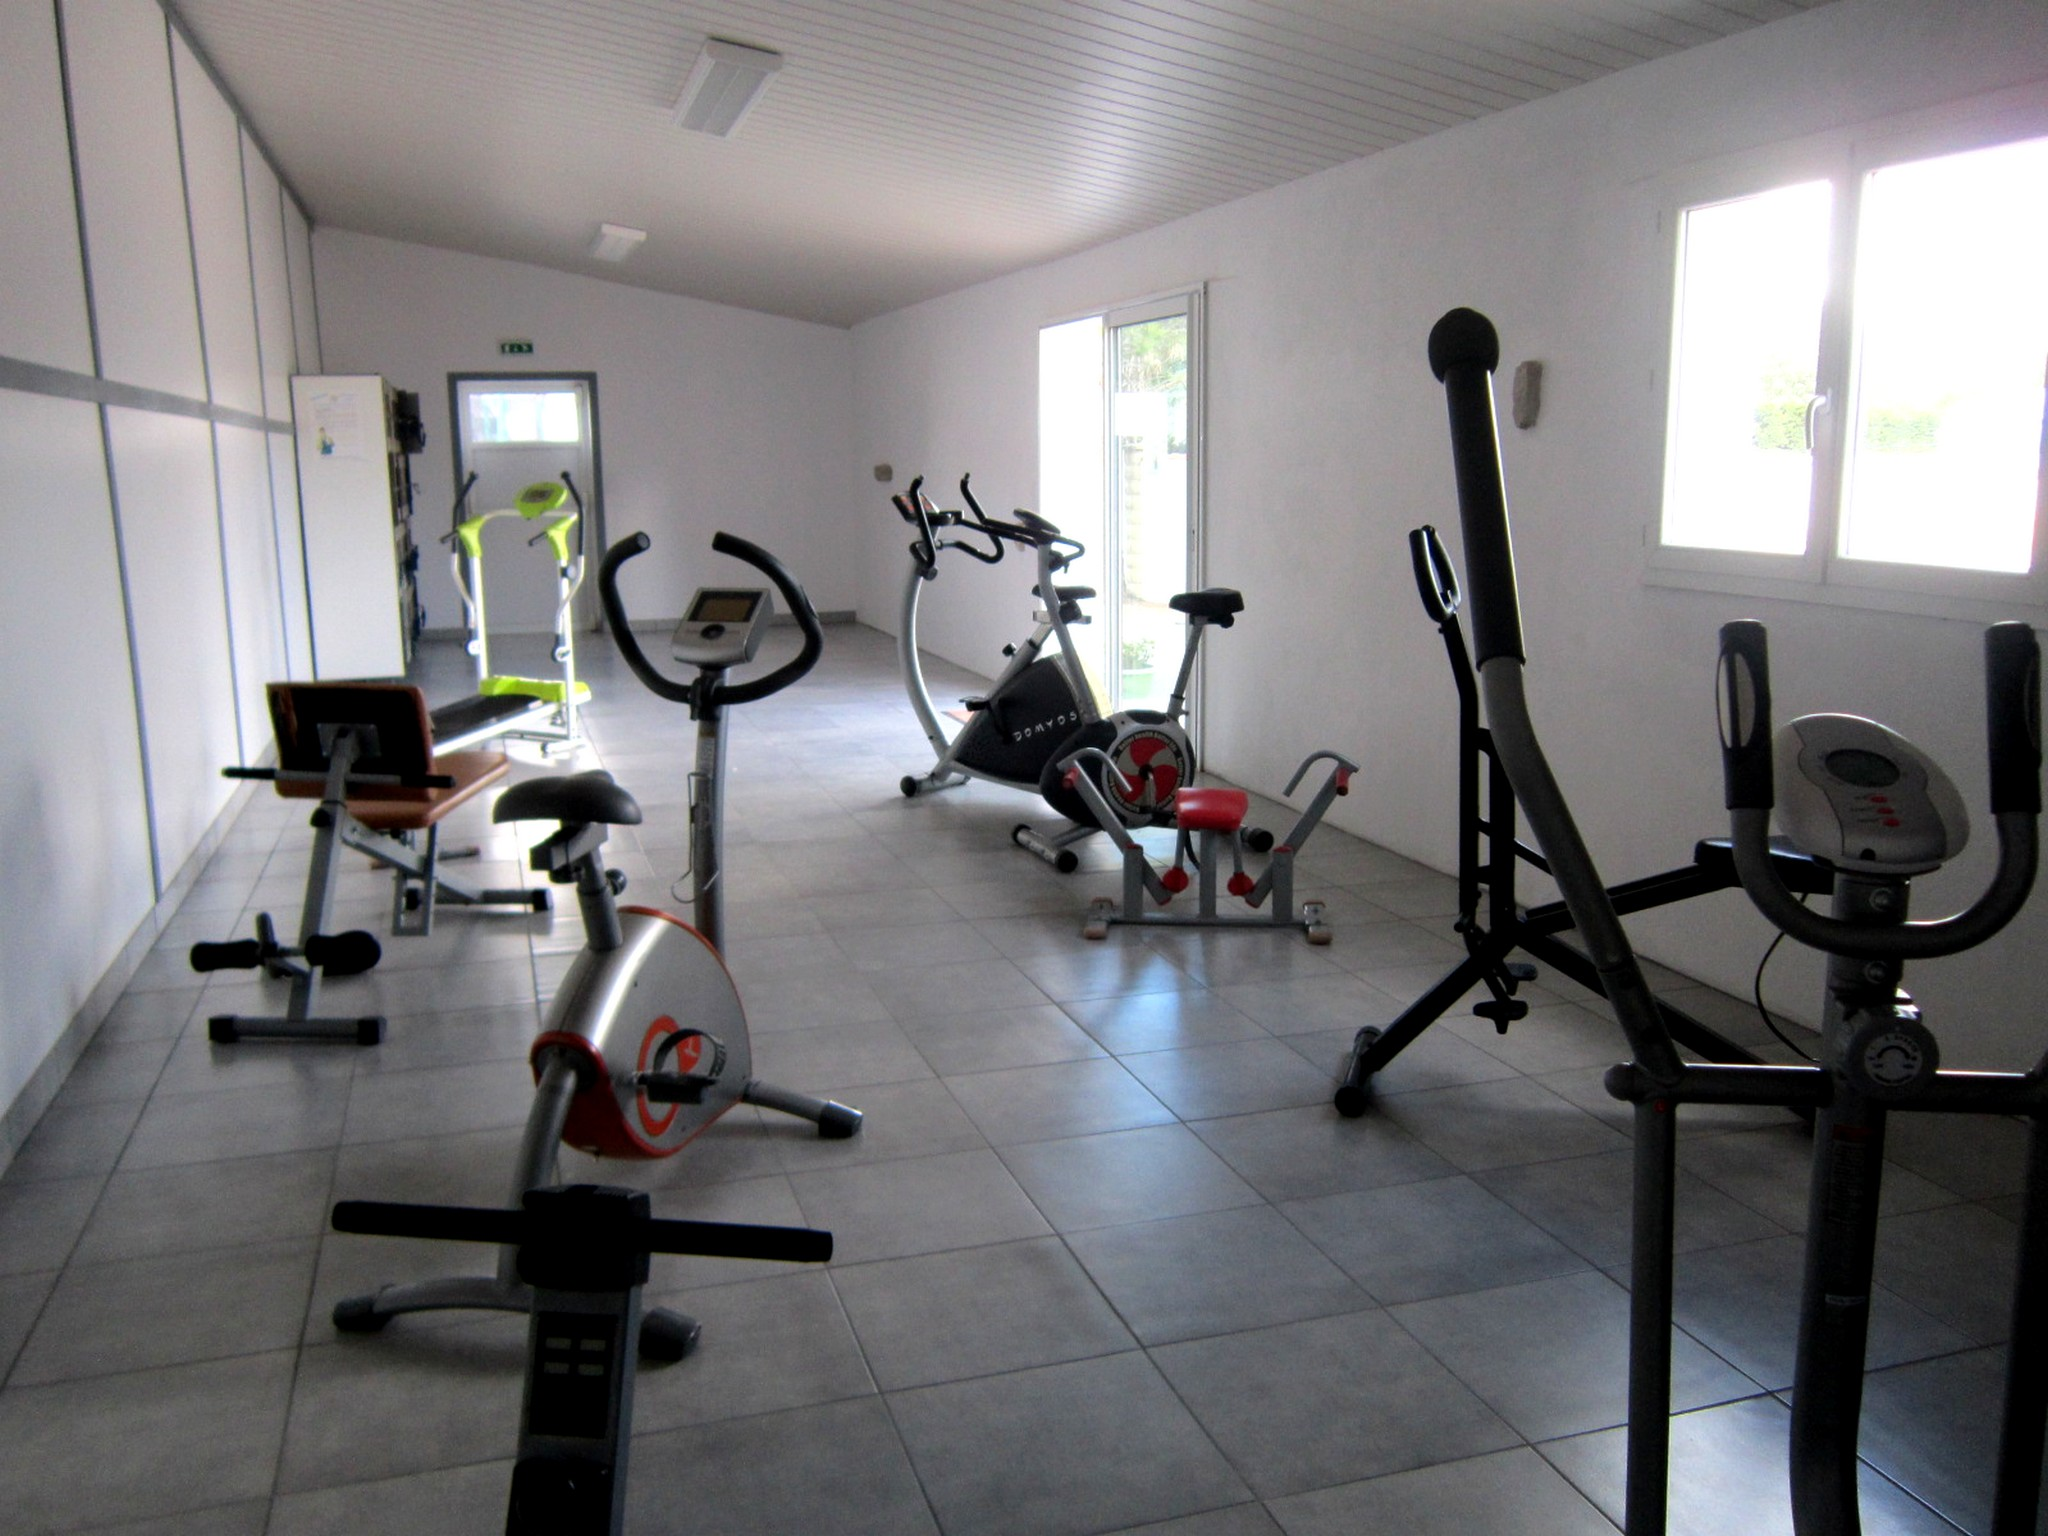 Family campsite with a fitness room